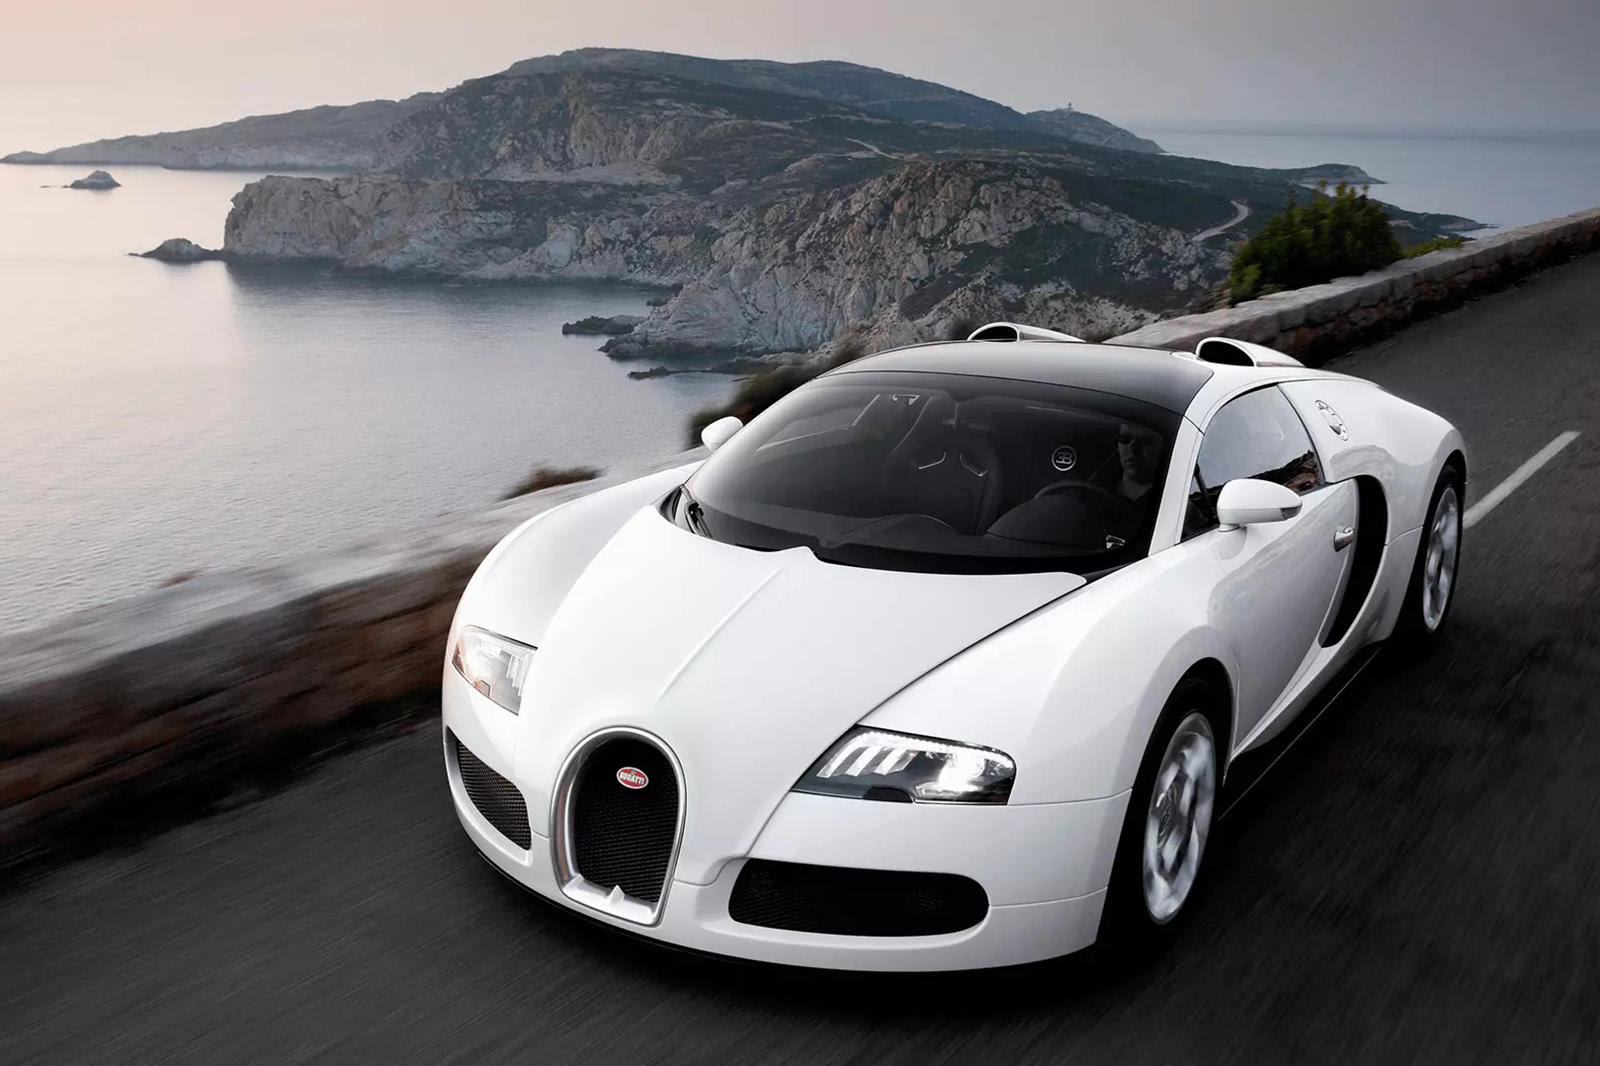 Bugatti Veyron Grand Sport Review Trims Specs Price New Interior Features Exterior Design And Specifications Carbuzz